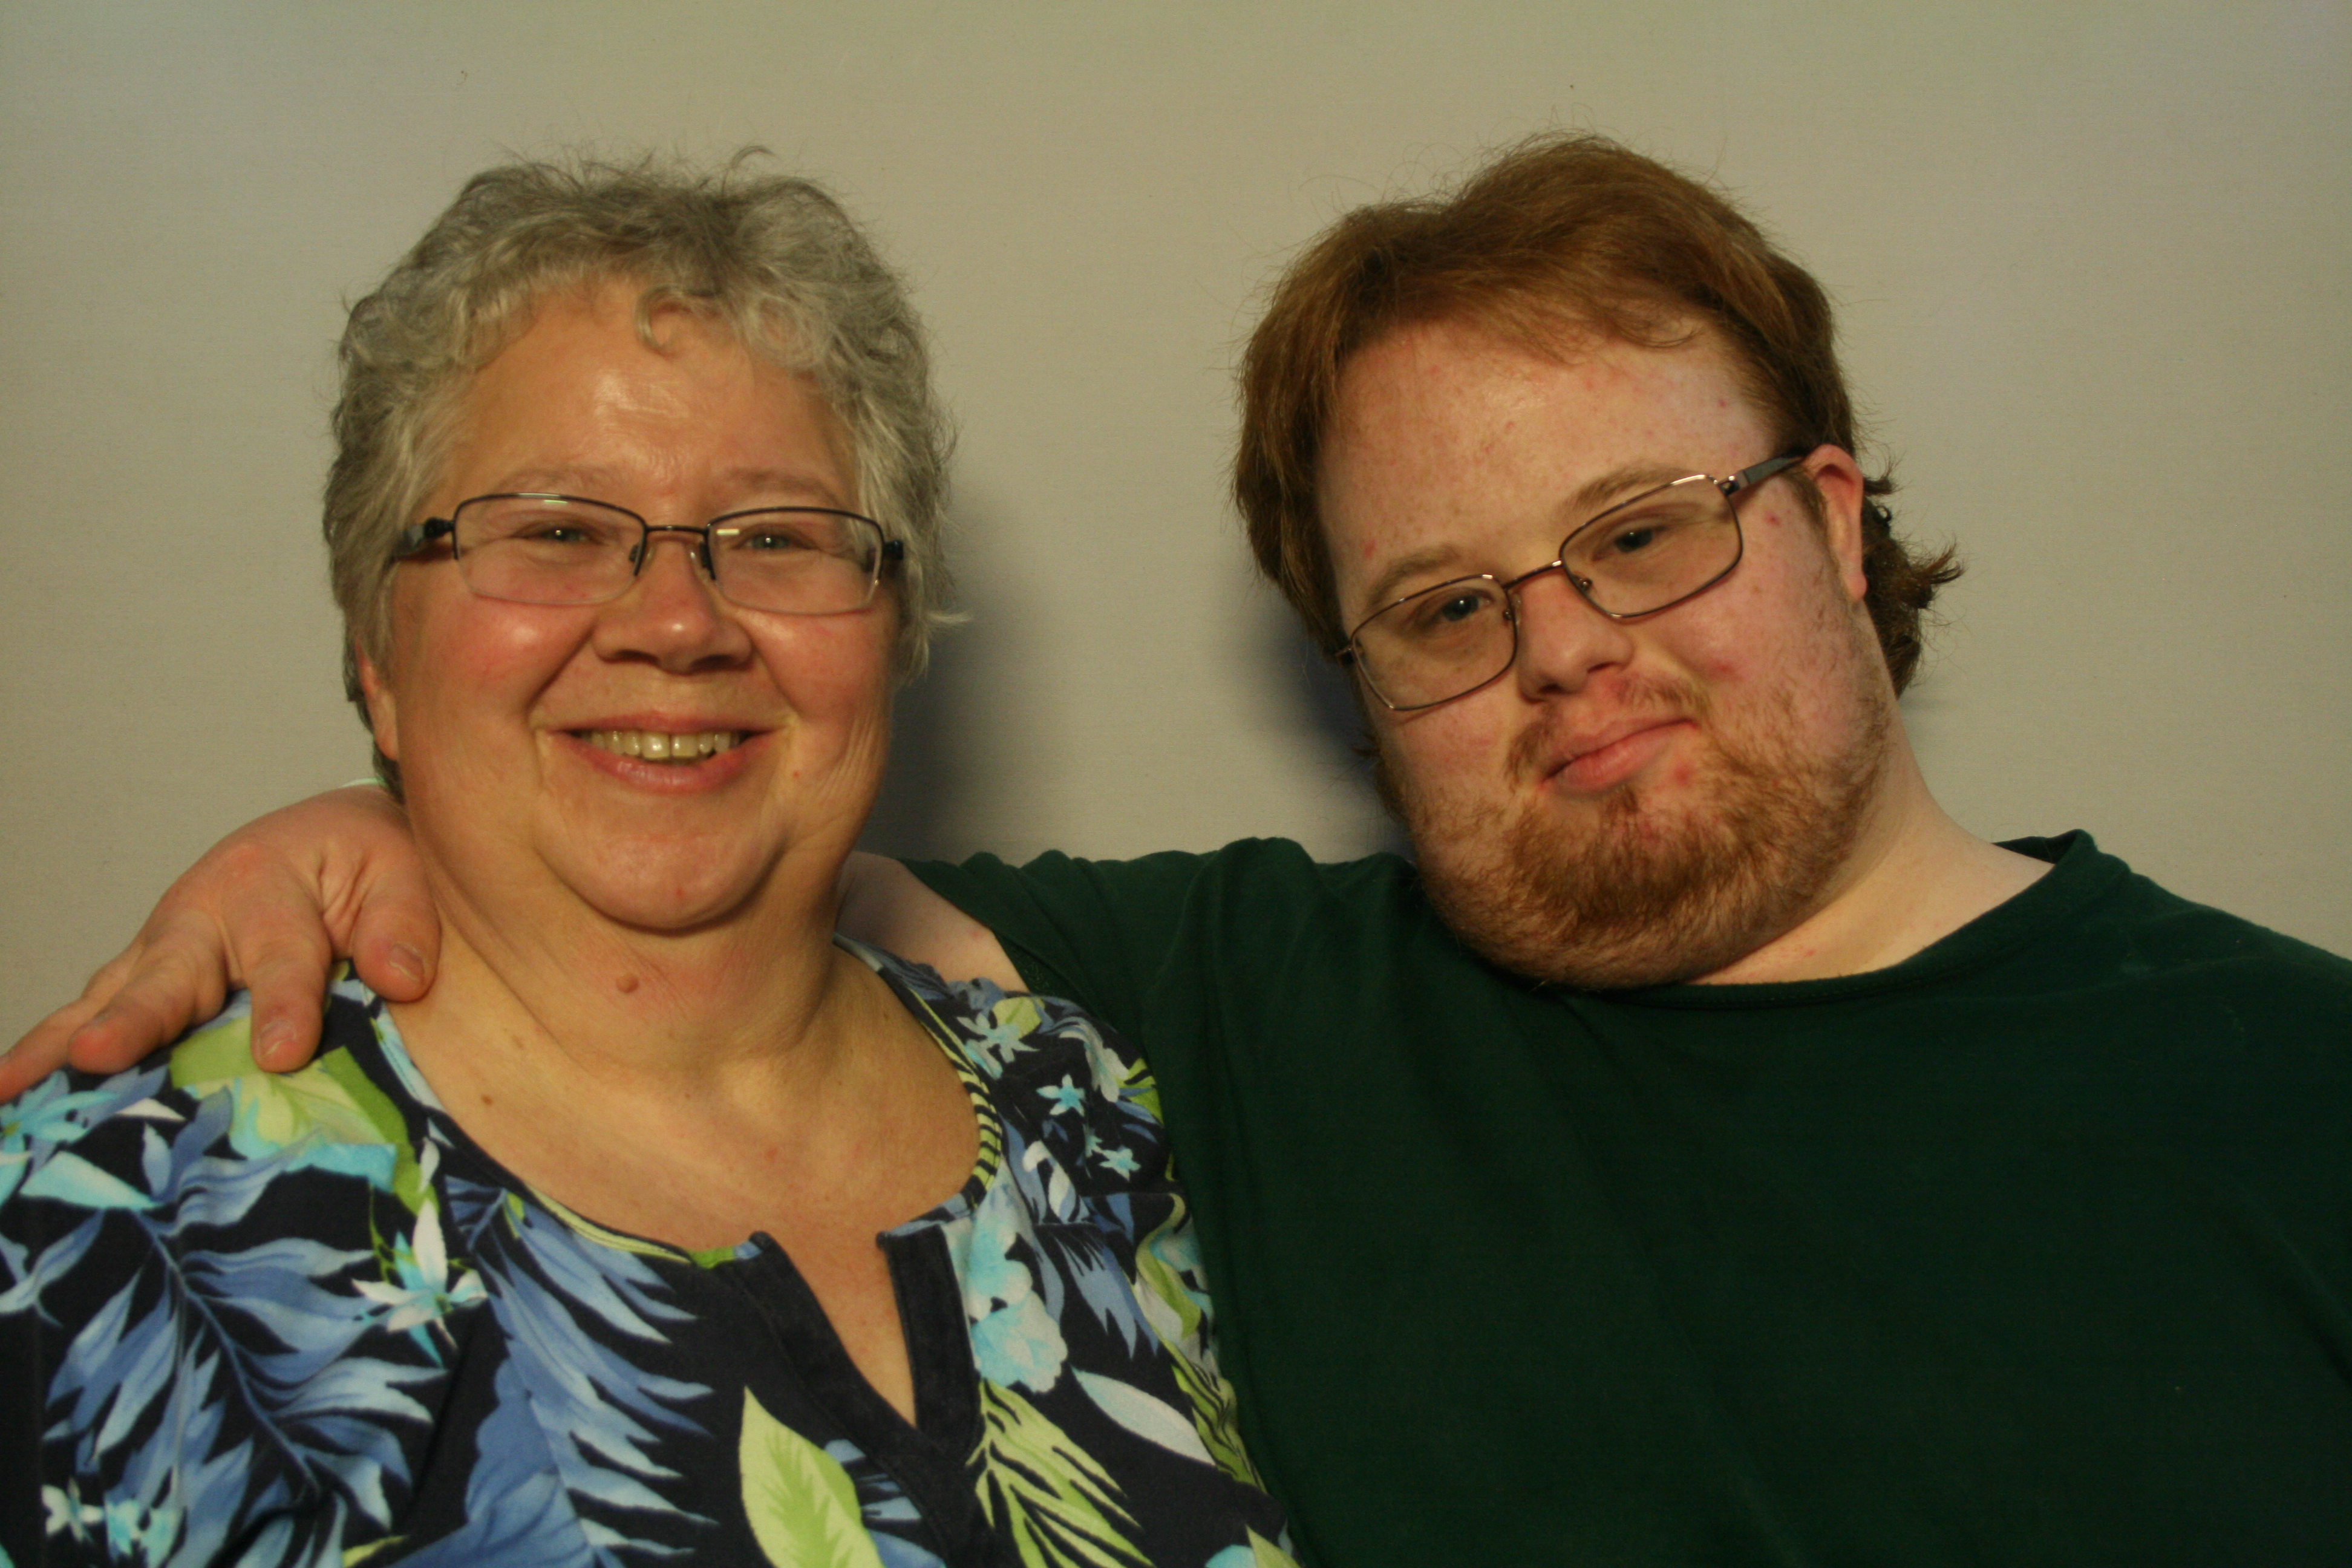 StoryCorps 434: Listen Closely